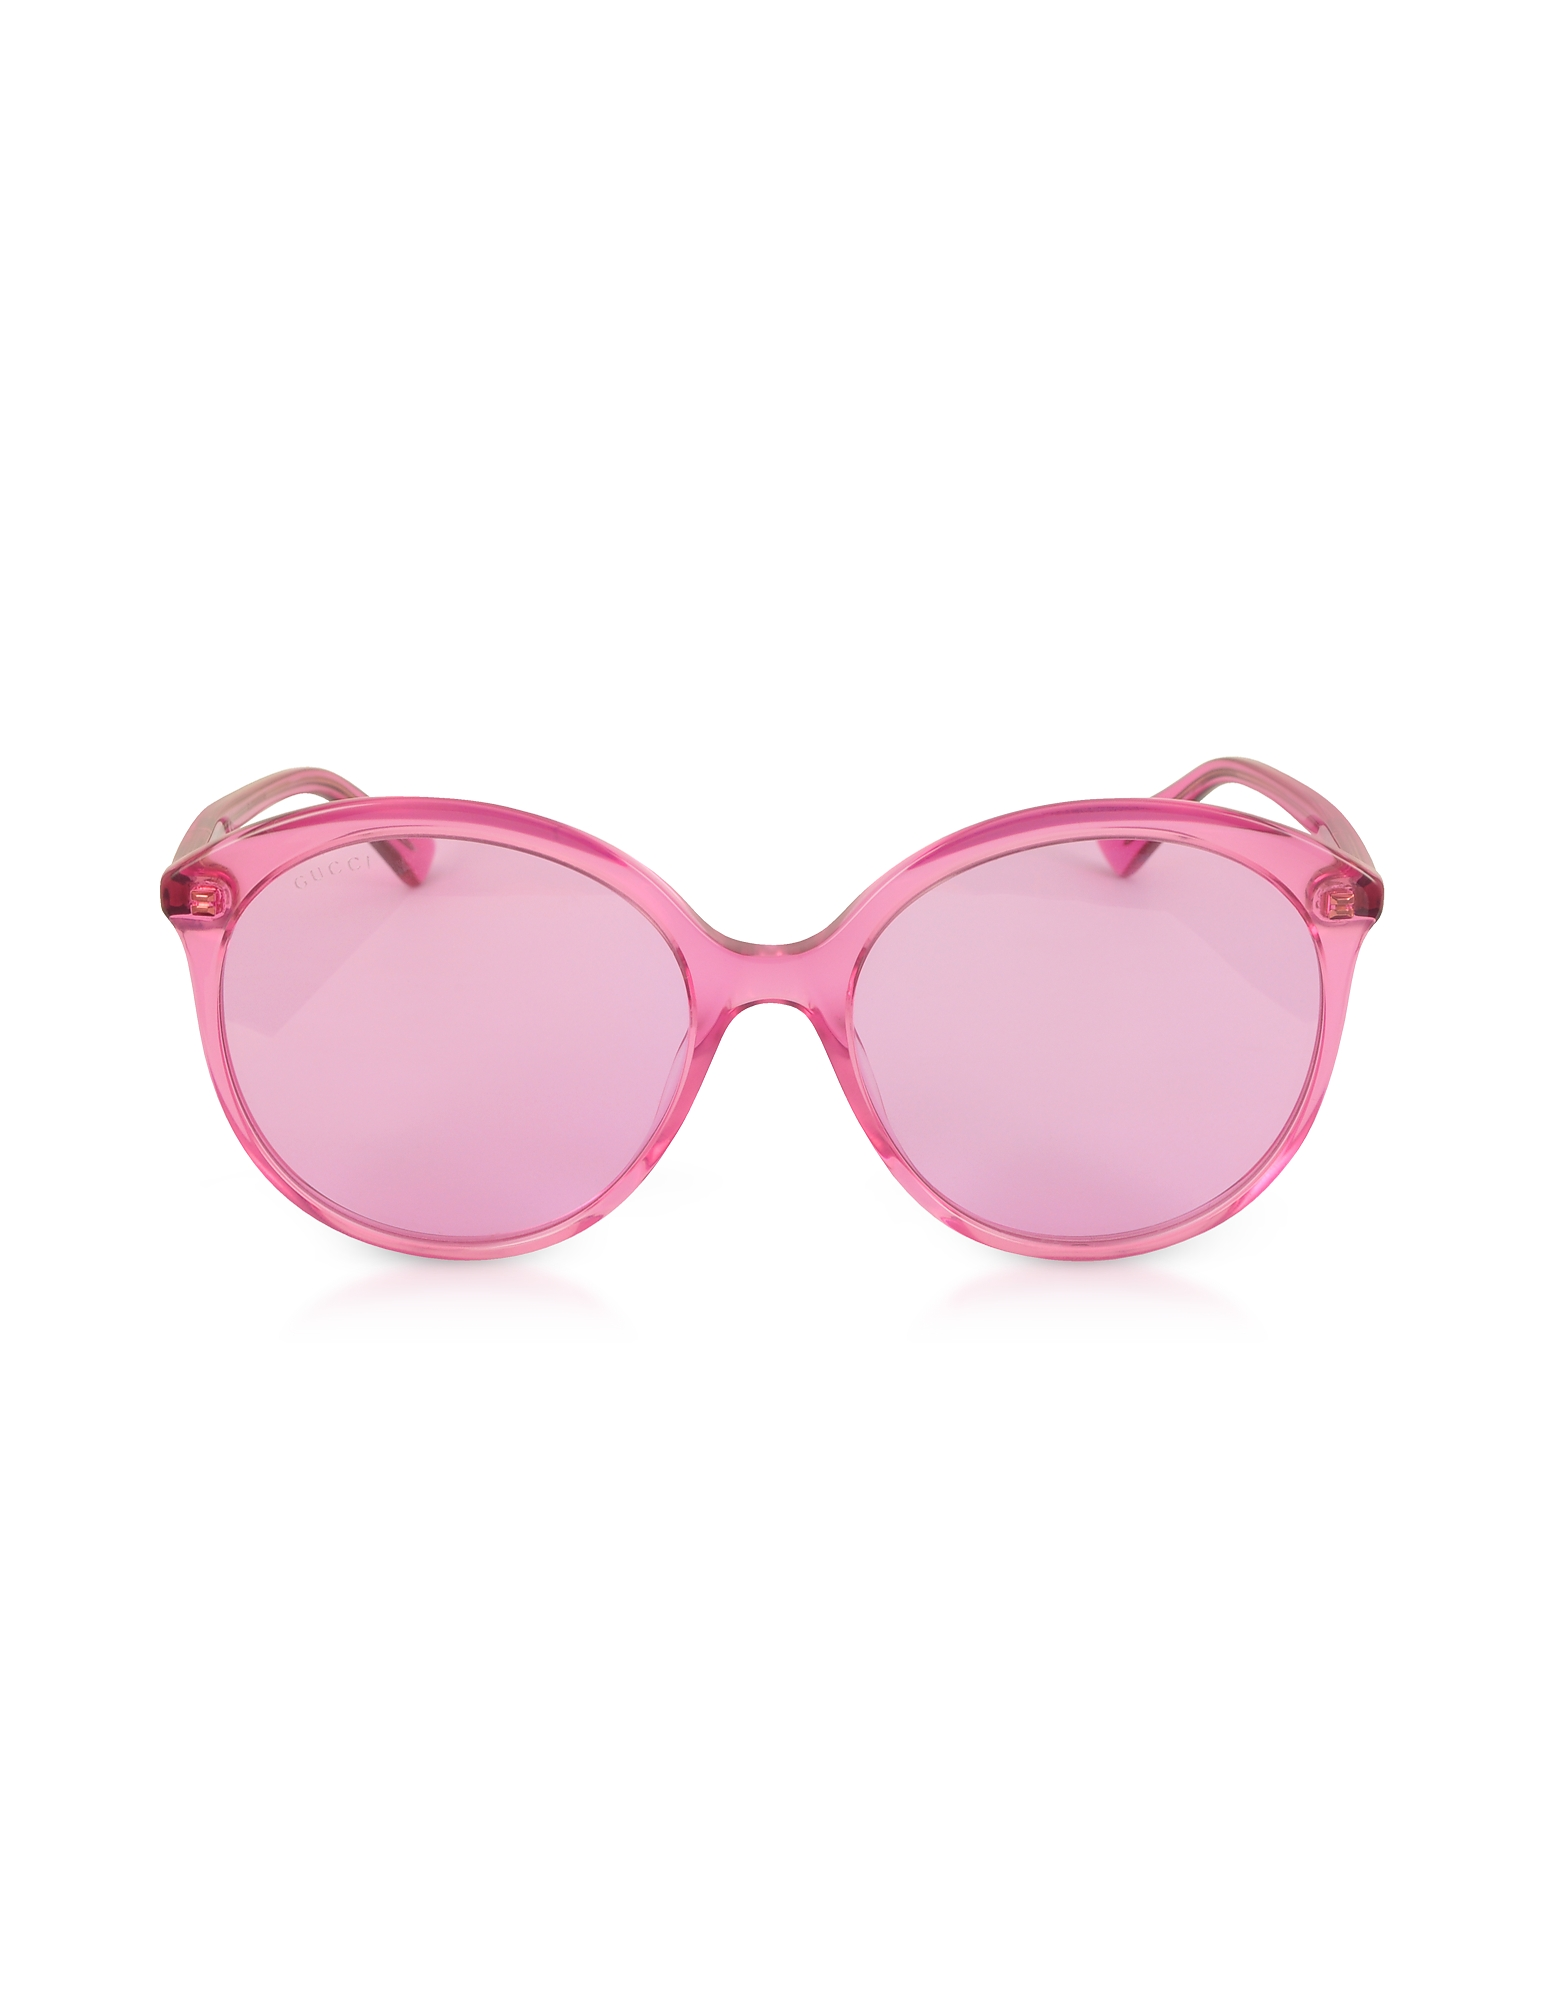 Gucci Sunglasses, GG0257S Specialized Fit Round-frame Transparent Fuchsia Acetate Sunglasses